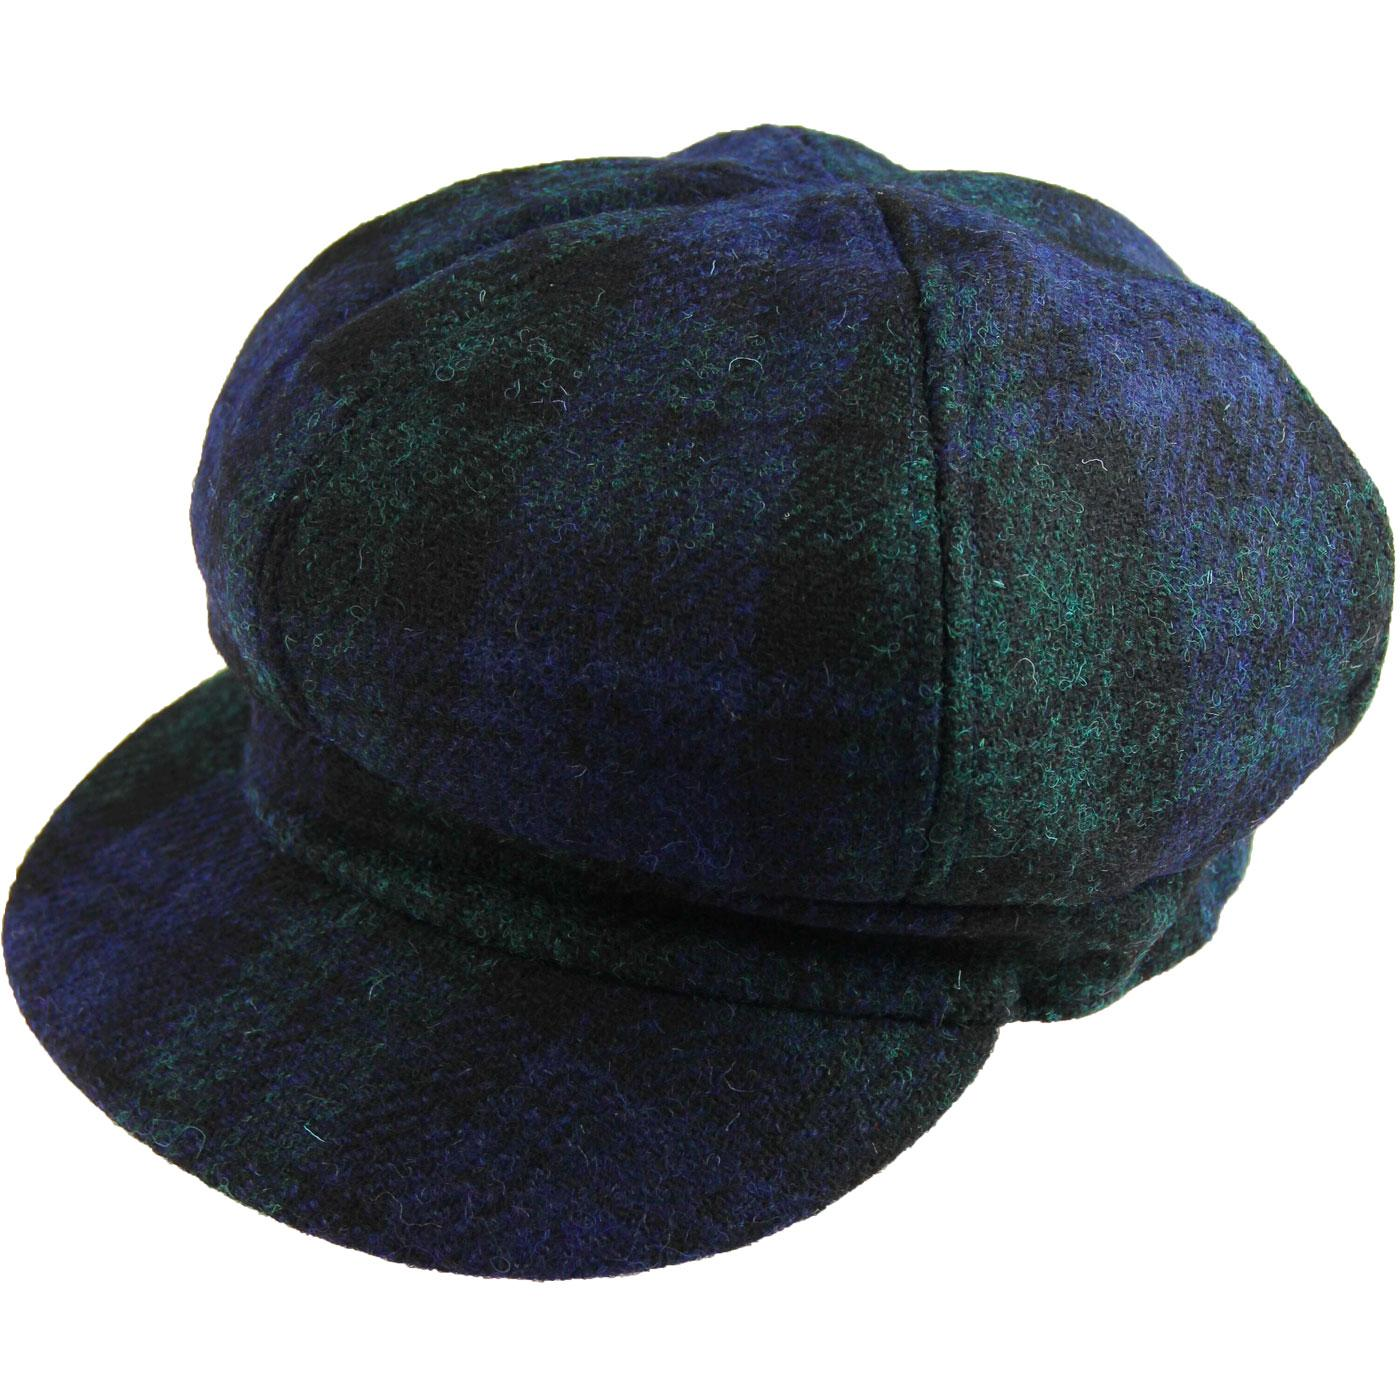 FAILSWORTH Women's Harris Tweed Bakerboy Cap (N/G)